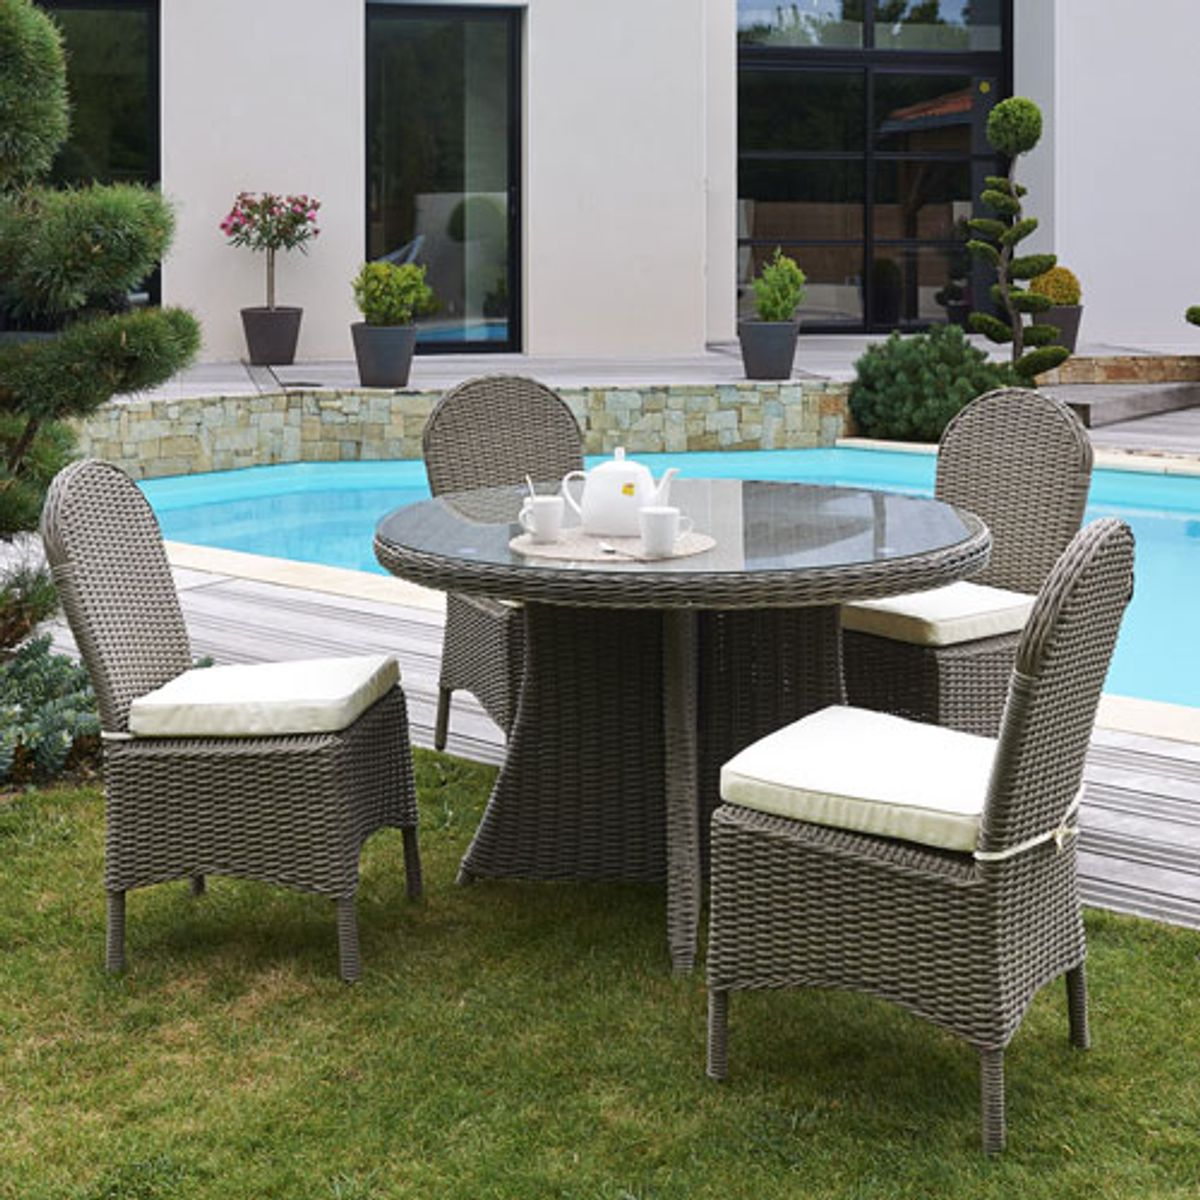 table et chaise de jardin en resine tressee elegant table jardin ronde resine tressee id es d. Black Bedroom Furniture Sets. Home Design Ideas